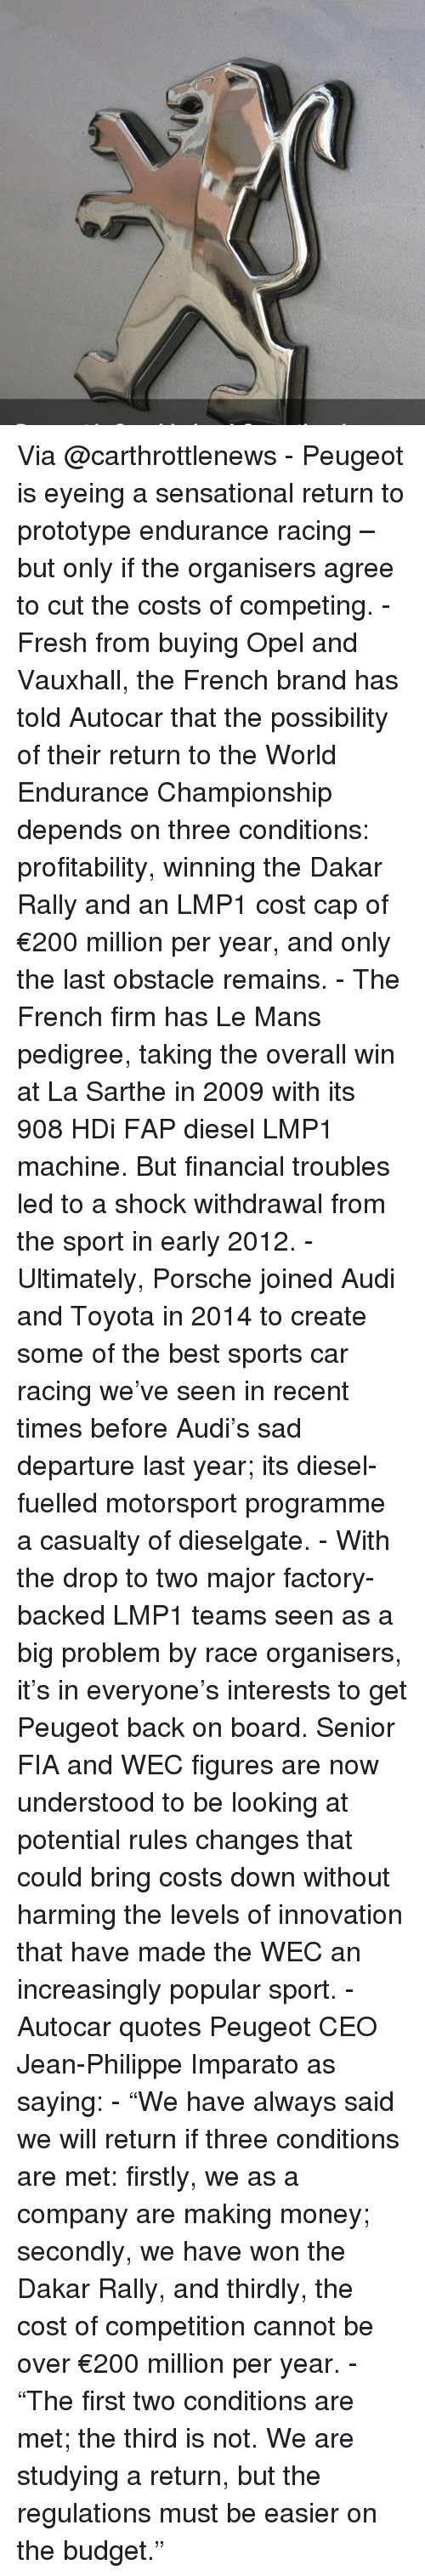 """Memes, 🤖, and Brand: Via @carthrottlenews - Peugeot is eyeing a sensational return to prototype endurance racing – but only if the organisers agree to cut the costs of competing. - Fresh from buying Opel and Vauxhall, the French brand has told Autocar that the possibility of their return to the World Endurance Championship depends on three conditions: profitability, winning the Dakar Rally and an LMP1 cost cap of €200 million per year, and only the last obstacle remains. - The French firm has Le Mans pedigree, taking the overall win at La Sarthe in 2009 with its 908 HDi FAP diesel LMP1 machine. But financial troubles led to a shock withdrawal from the sport in early 2012. - Ultimately, Porsche joined Audi and Toyota in 2014 to create some of the best sports car racing we've seen in recent times before Audi's sad departure last year; its diesel-fuelled motorsport programme a casualty of dieselgate. - With the drop to two major factory-backed LMP1 teams seen as a big problem by race organisers, it's in everyone's interests to get Peugeot back on board. Senior FIA and WEC figures are now understood to be looking at potential rules changes that could bring costs down without harming the levels of innovation that have made the WEC an increasingly popular sport. - Autocar quotes Peugeot CEO Jean-Philippe Imparato as saying: - """"We have always said we will return if three conditions are met: firstly, we as a company are making money; secondly, we have won the Dakar Rally, and thirdly, the cost of competition cannot be over €200 million per year. - """"The first two conditions are met; the third is not. We are studying a return, but the regulations must be easier on the budget."""""""